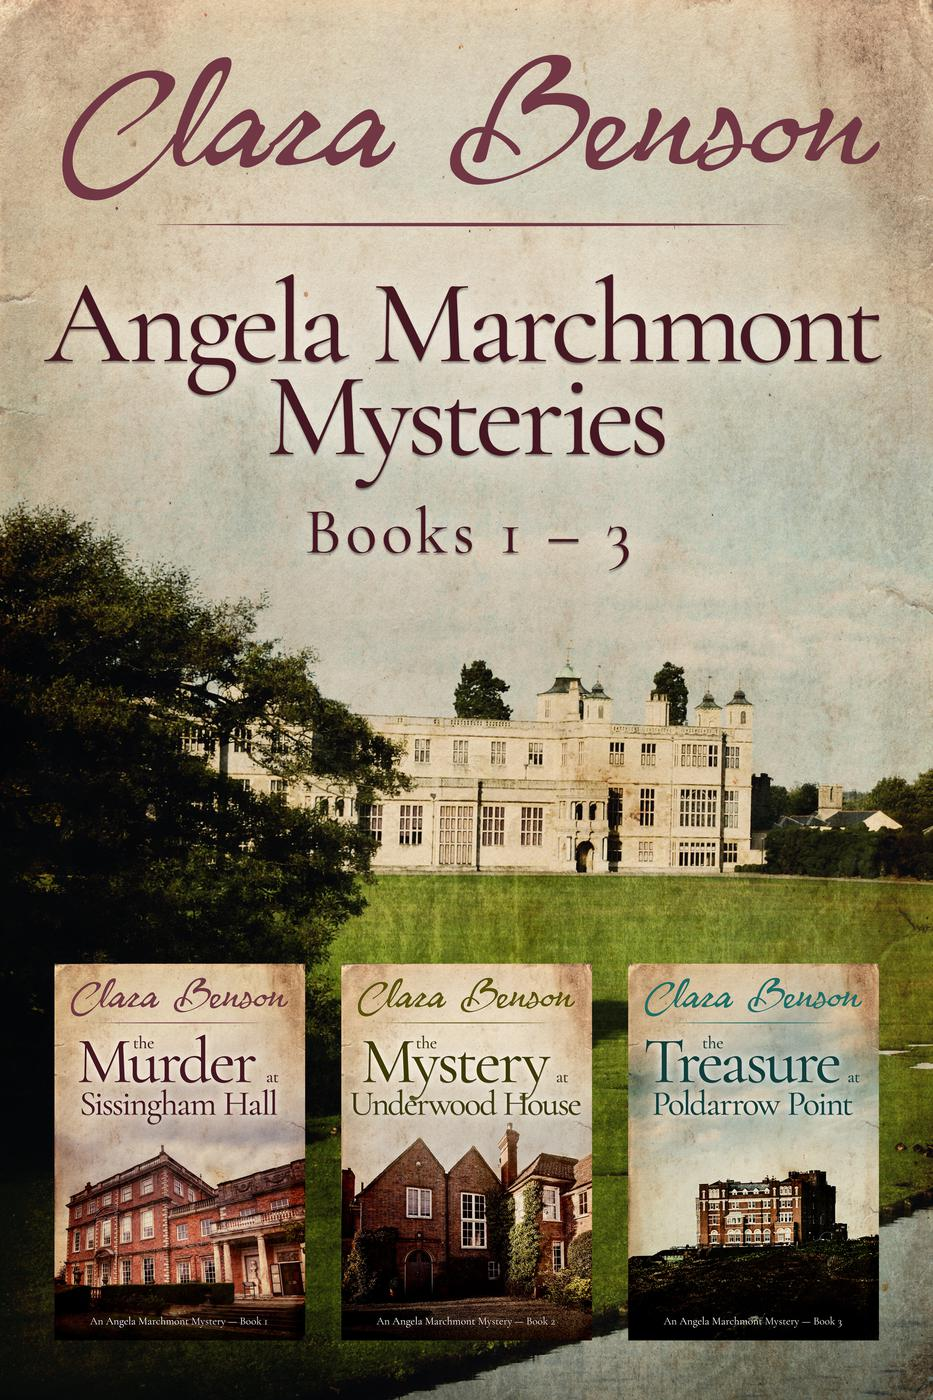 Angela Marchmont Mysteries Books 1-3 (An Angela Marchmont mystery) [electronic resource]